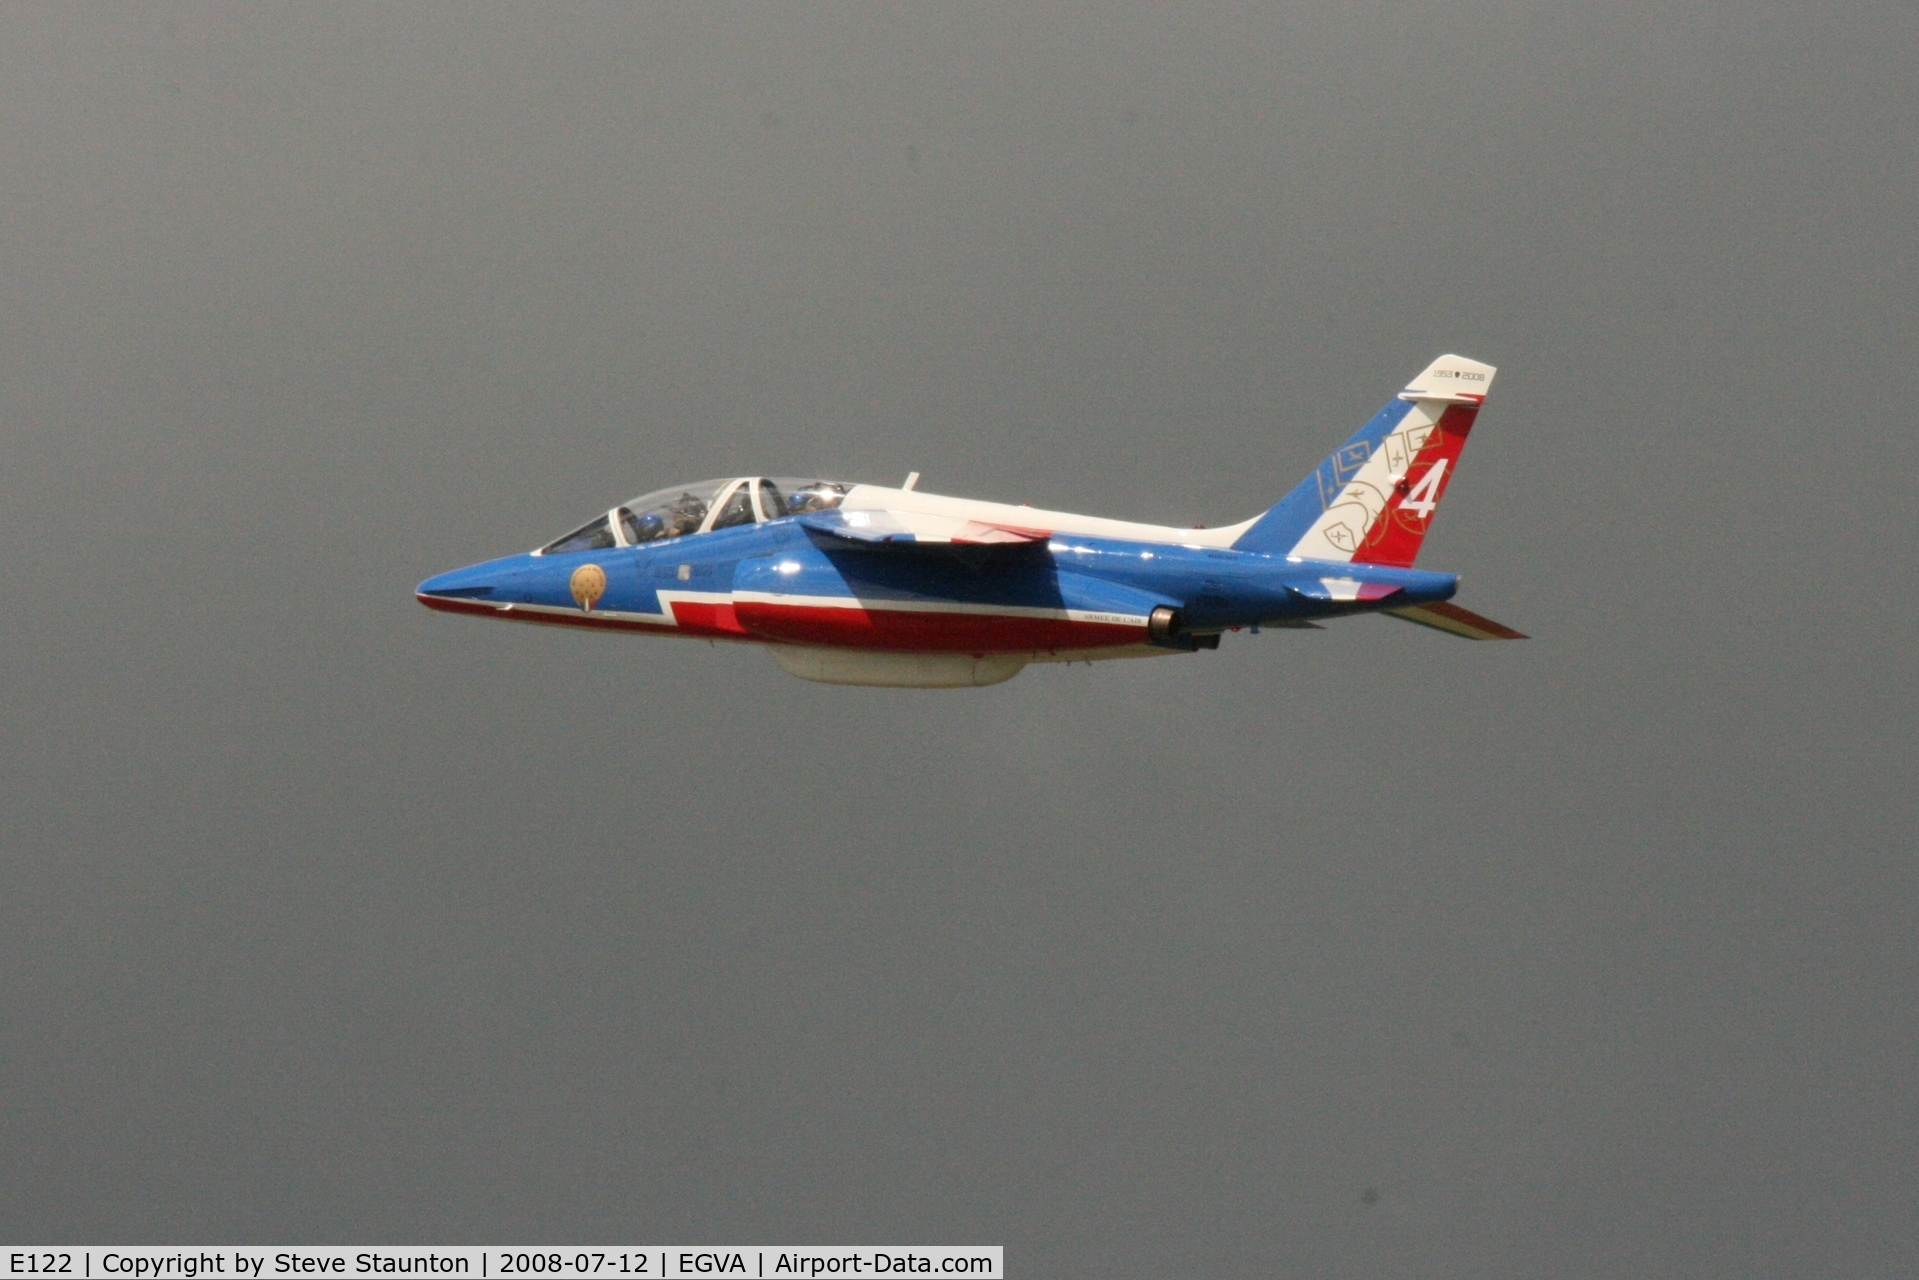 E122, Dassault-Dornier Alpha Jet E C/N E122, Taken at the Royal International Air Tattoo 2008 during arrivals and departures (show days cancelled due to bad weather)